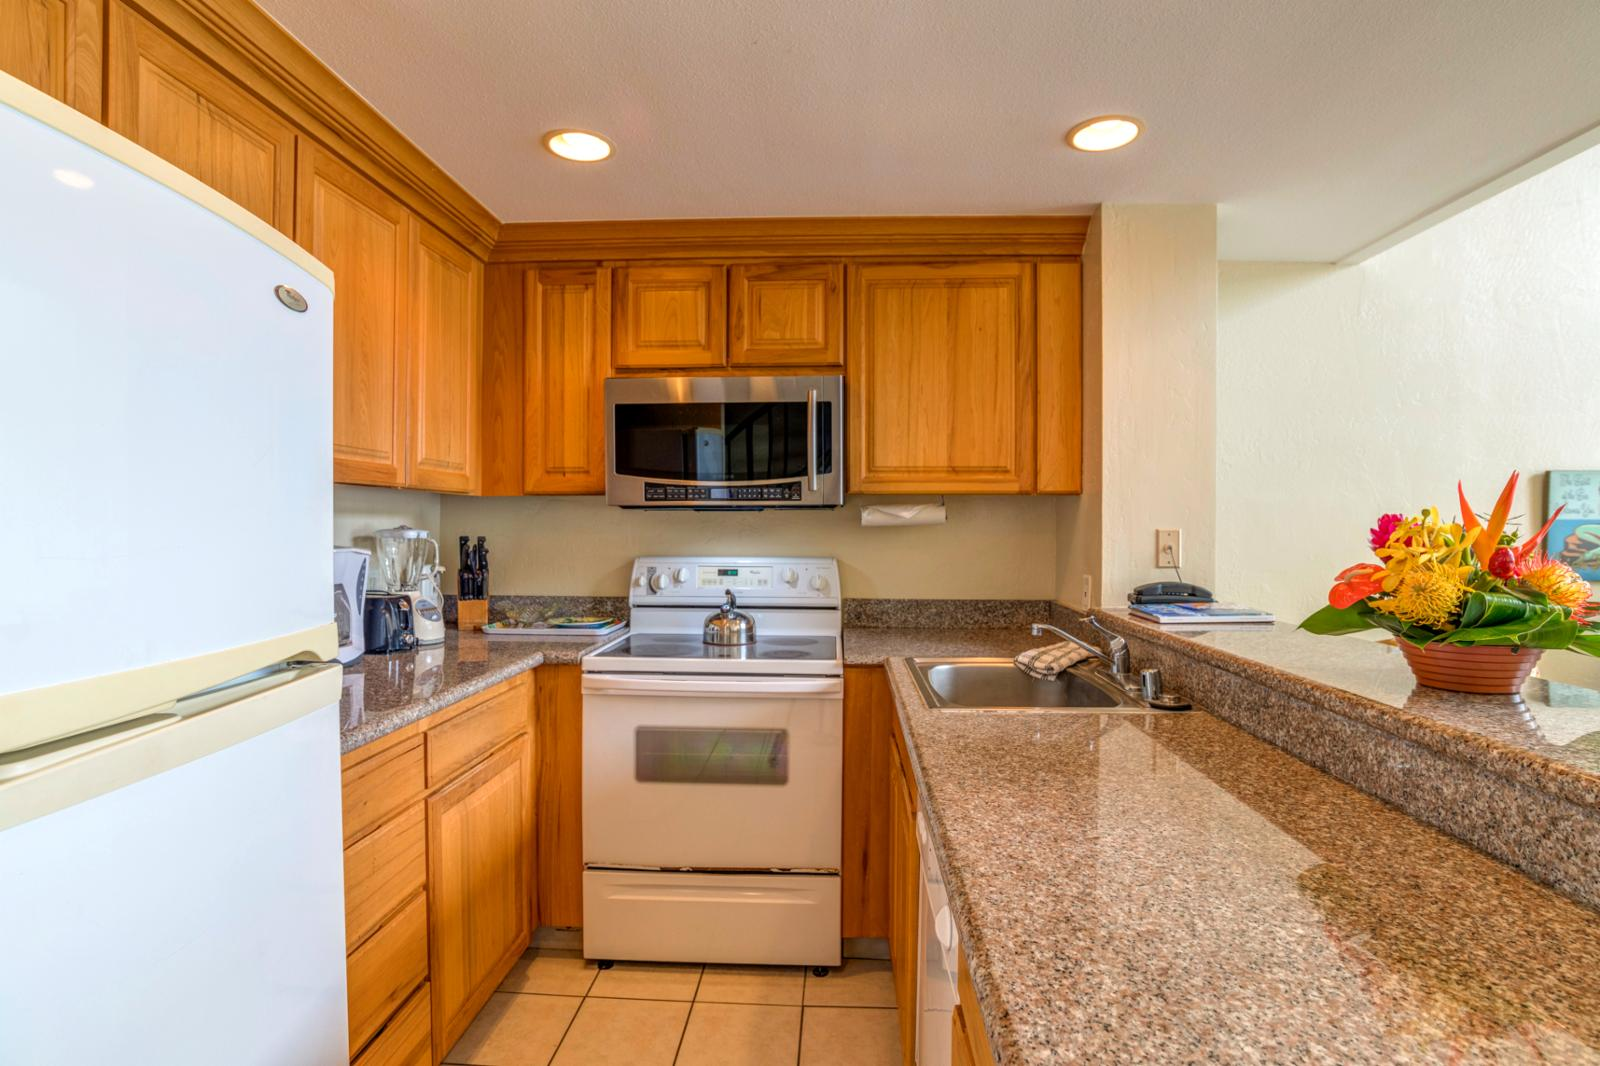 Generous layout and kitchen comes fully stocked ready for your use!